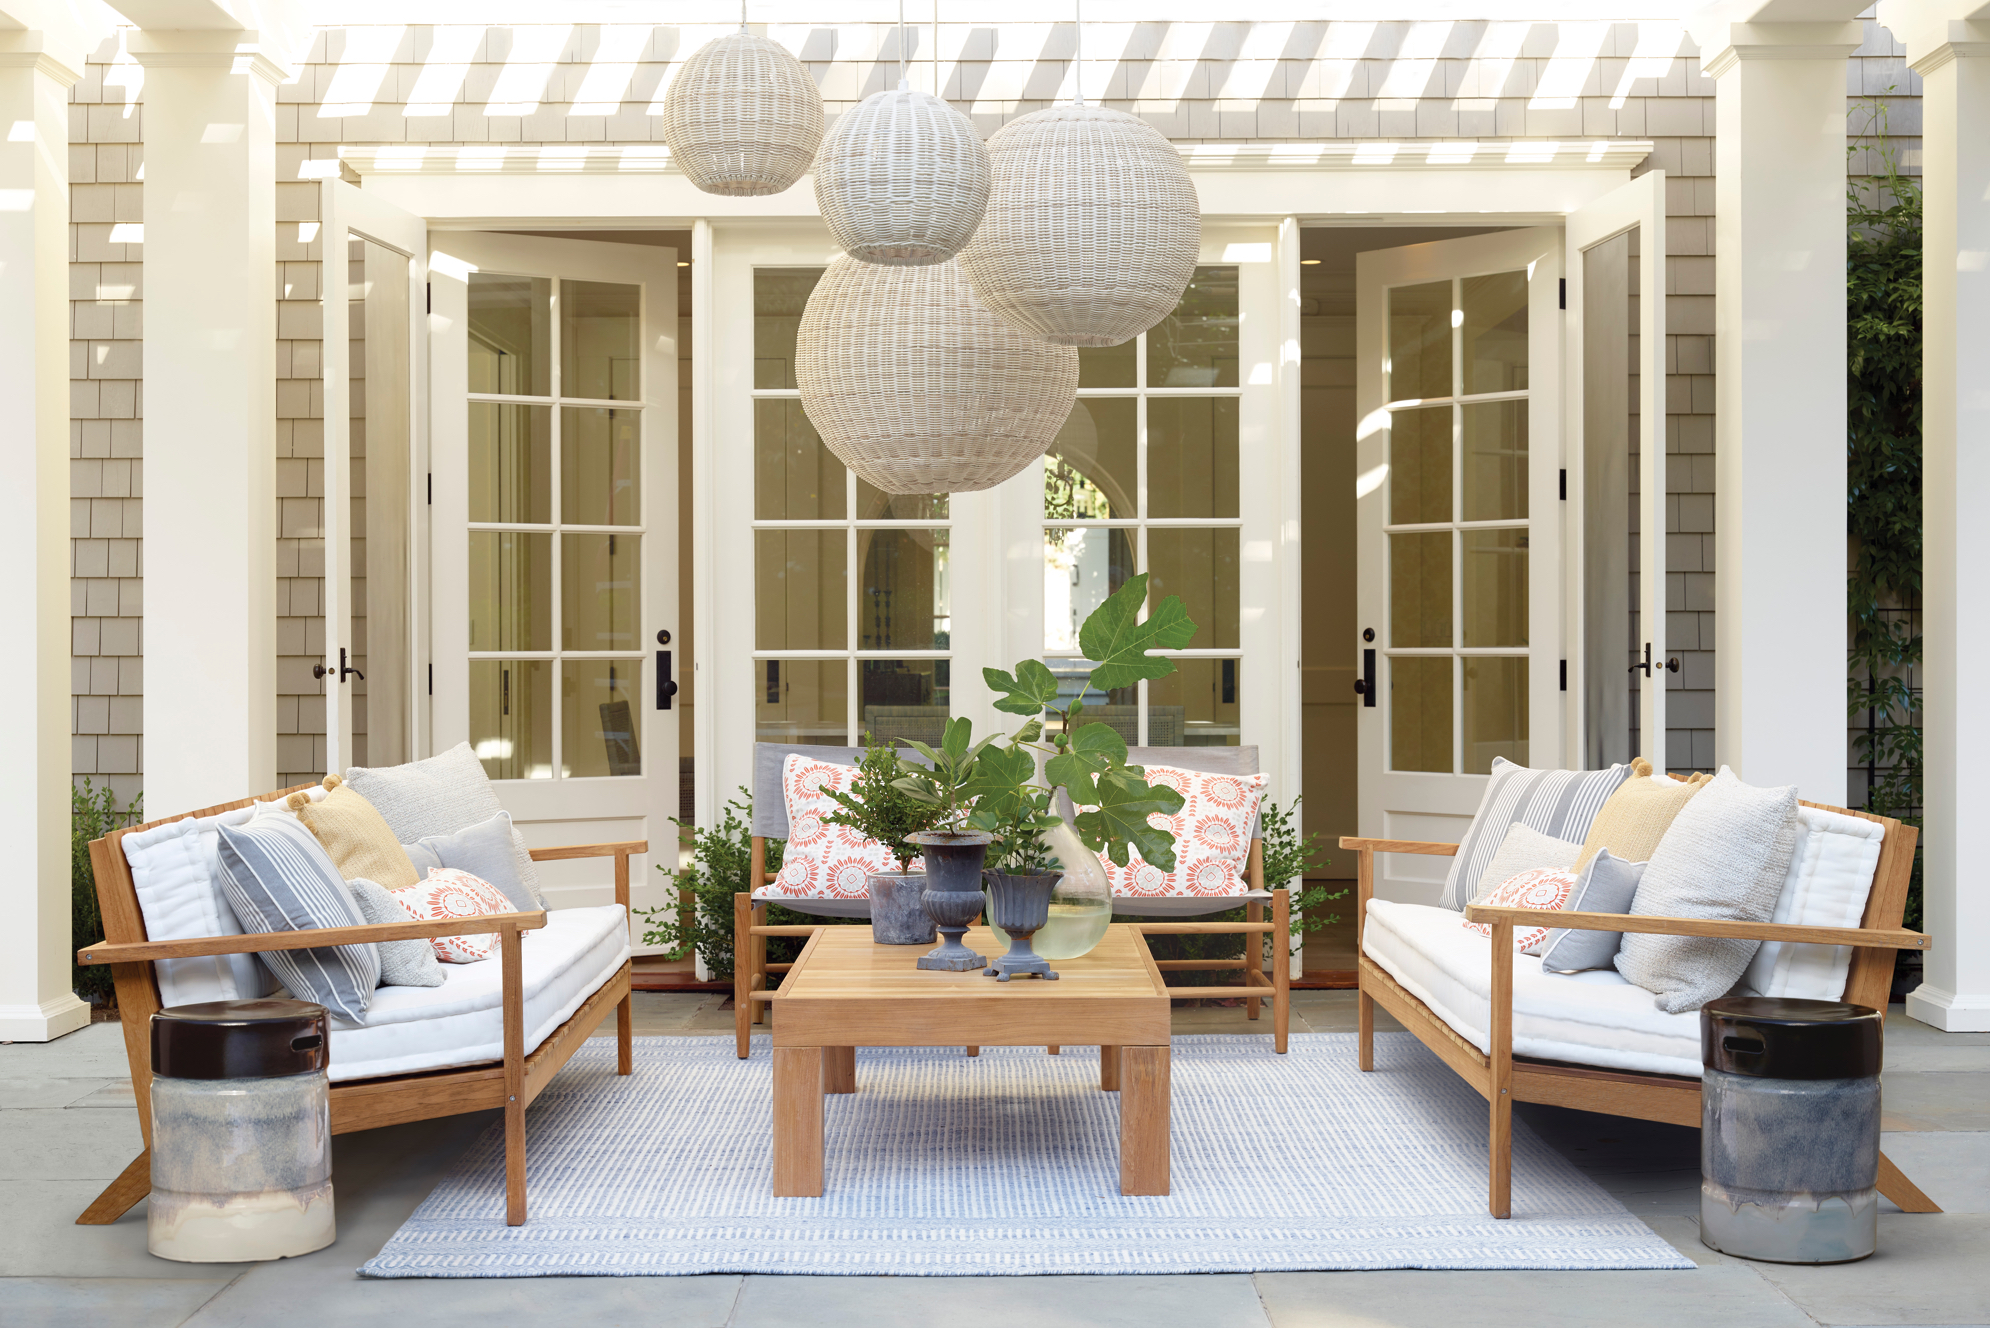 Outdoor living space - Serena and lily spring sale - pinteresting plans blog